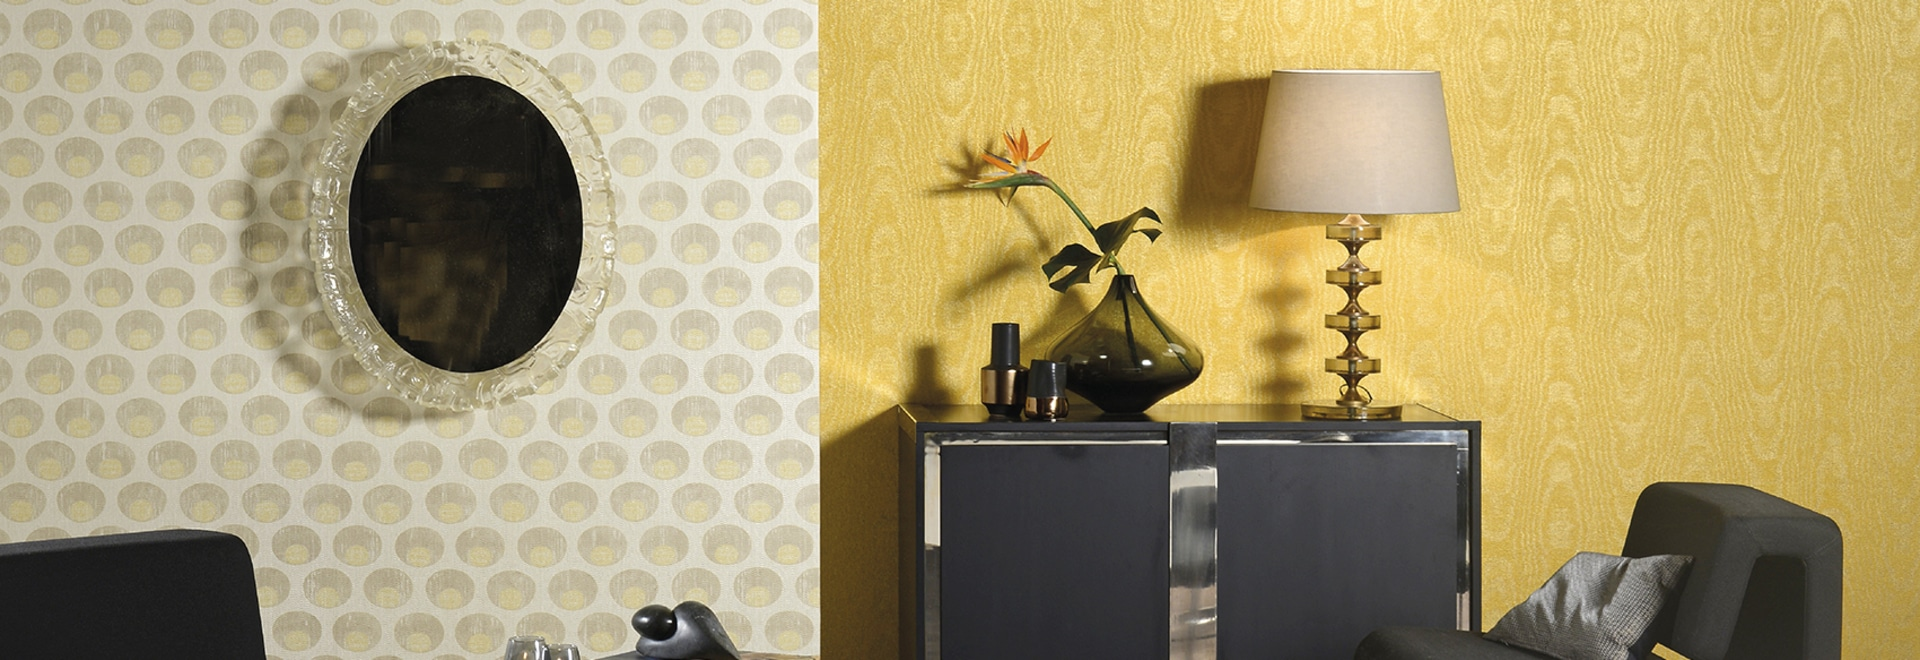 New: textile wallcovering on non-woven backing by Omexco